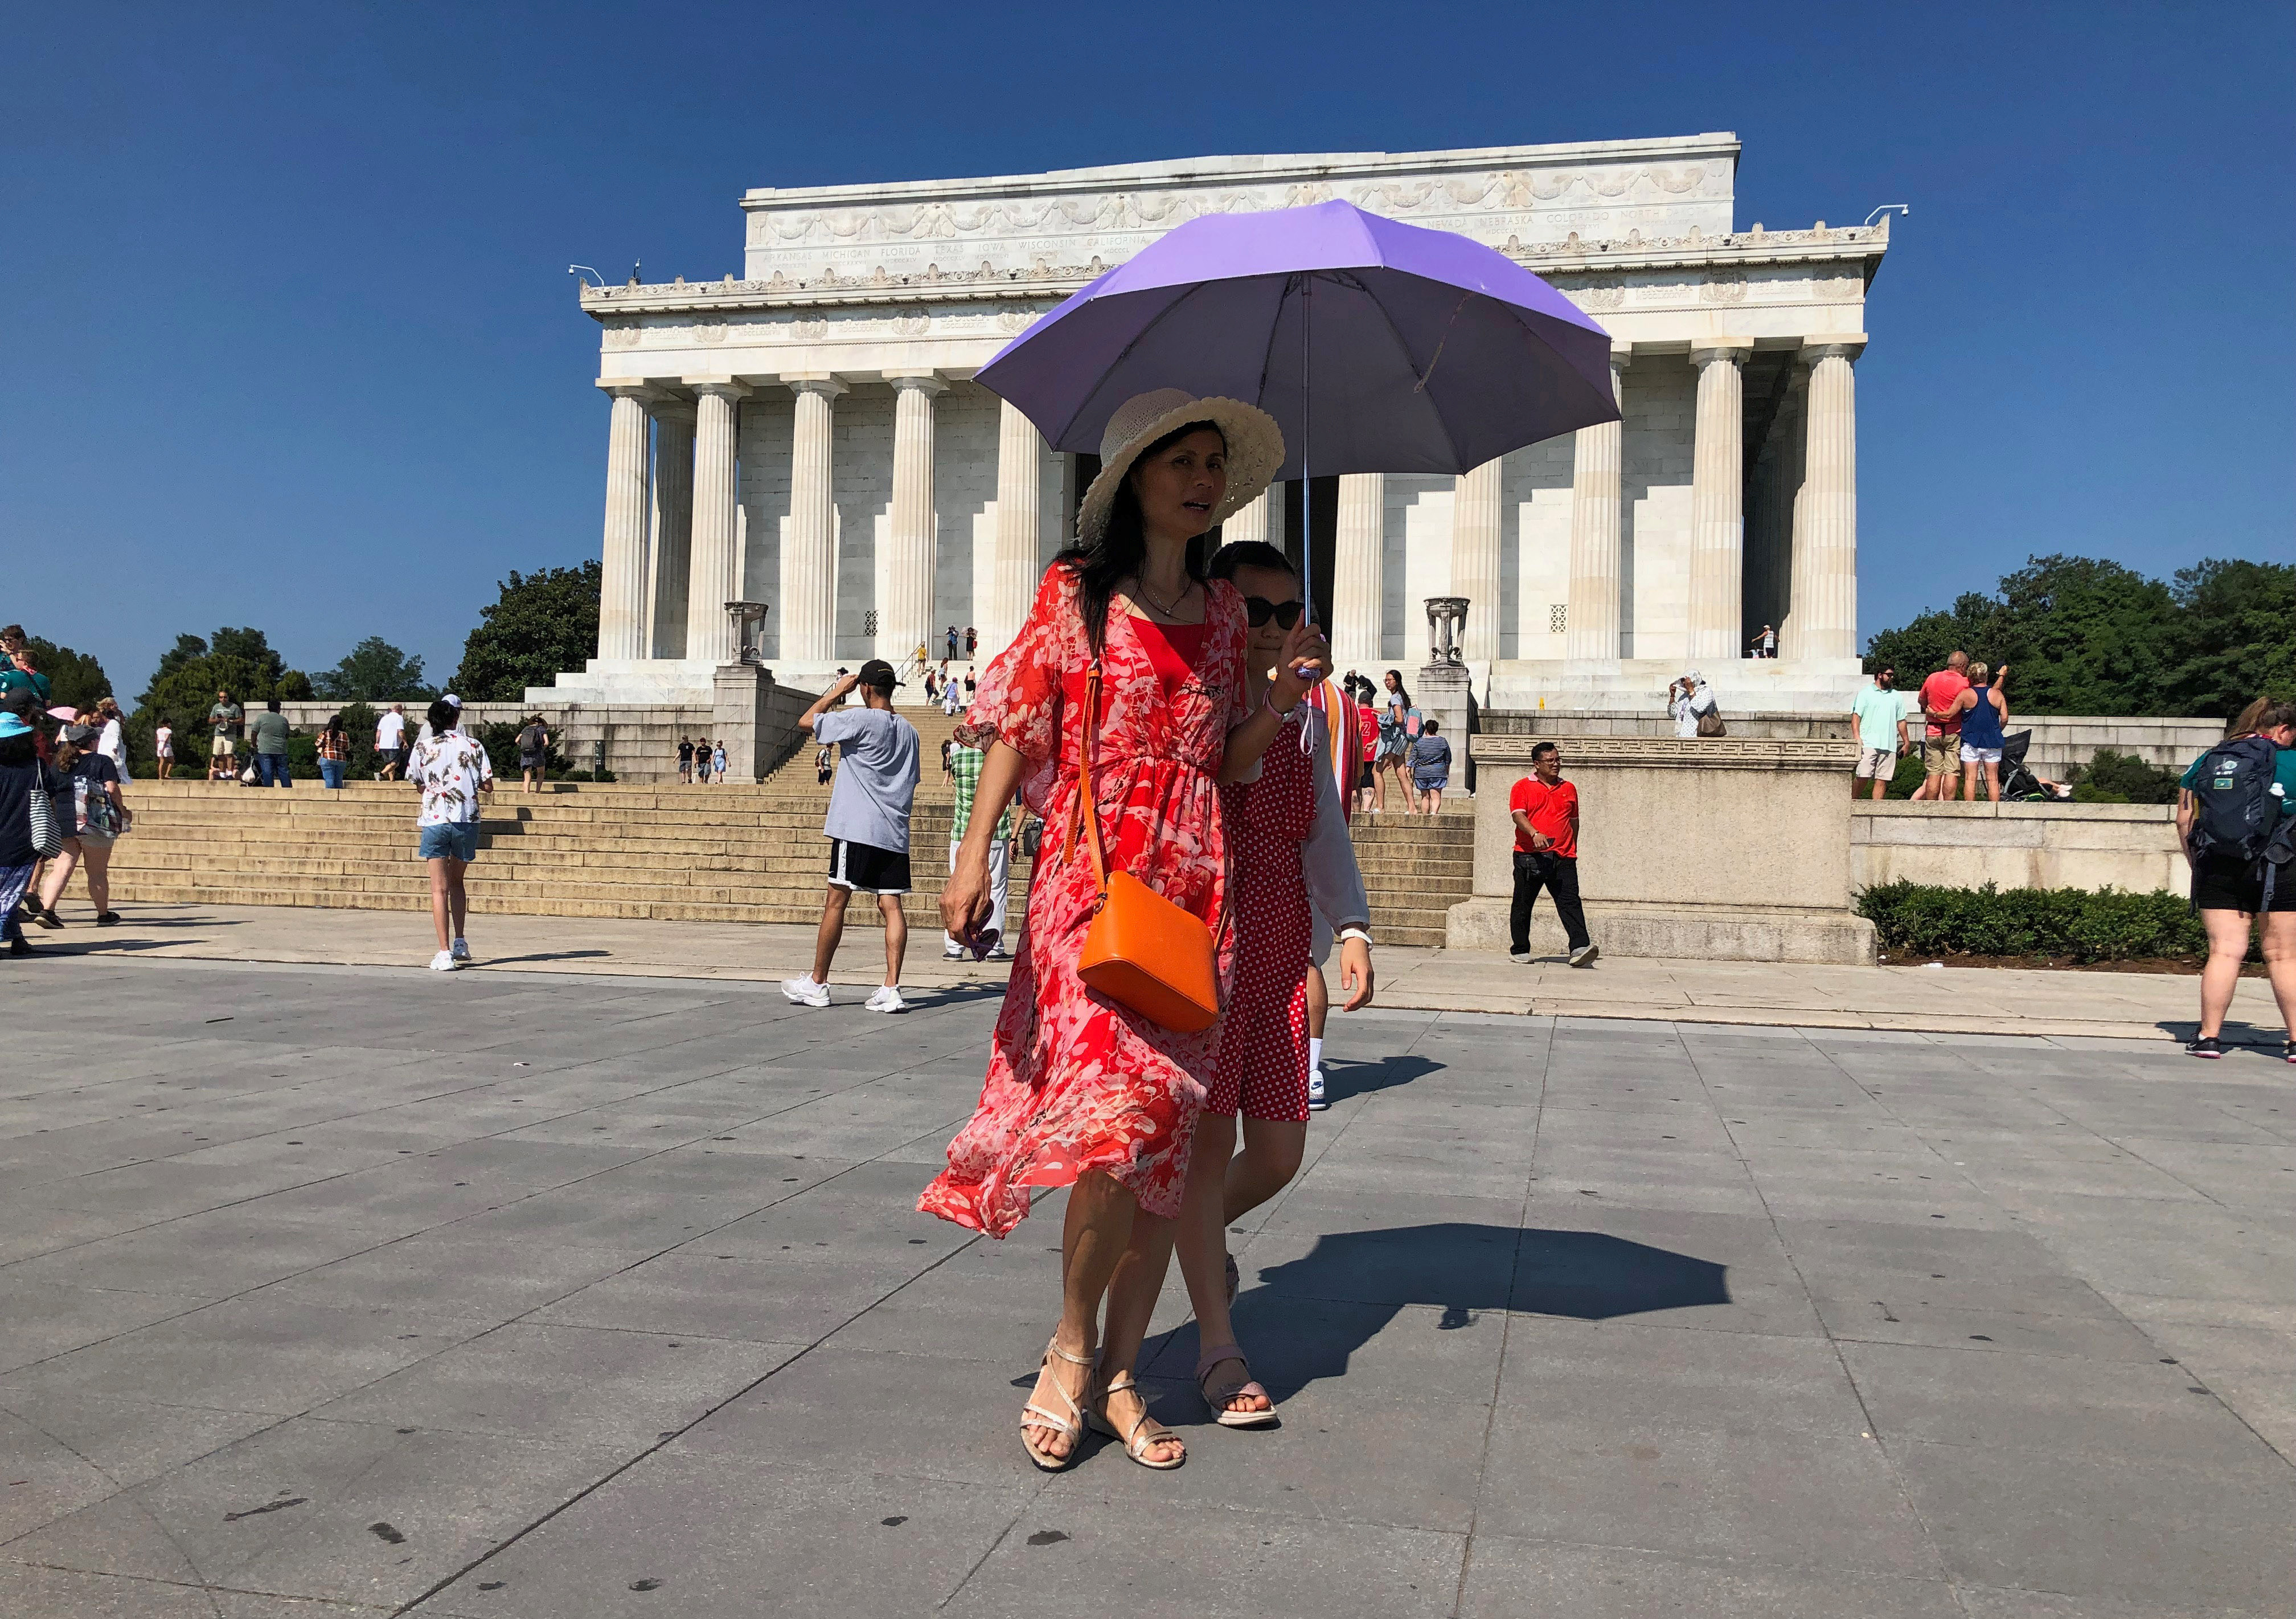 A tourist tries to shield herself from the sun using an umbrella in front of the Lincoln Memorial on a day when the temperature was forecast to reach 99 degrees F (37 C), in Washington, U.S., July 21, 2019. REUTERS/Will Dunham - RC19066D0BC0